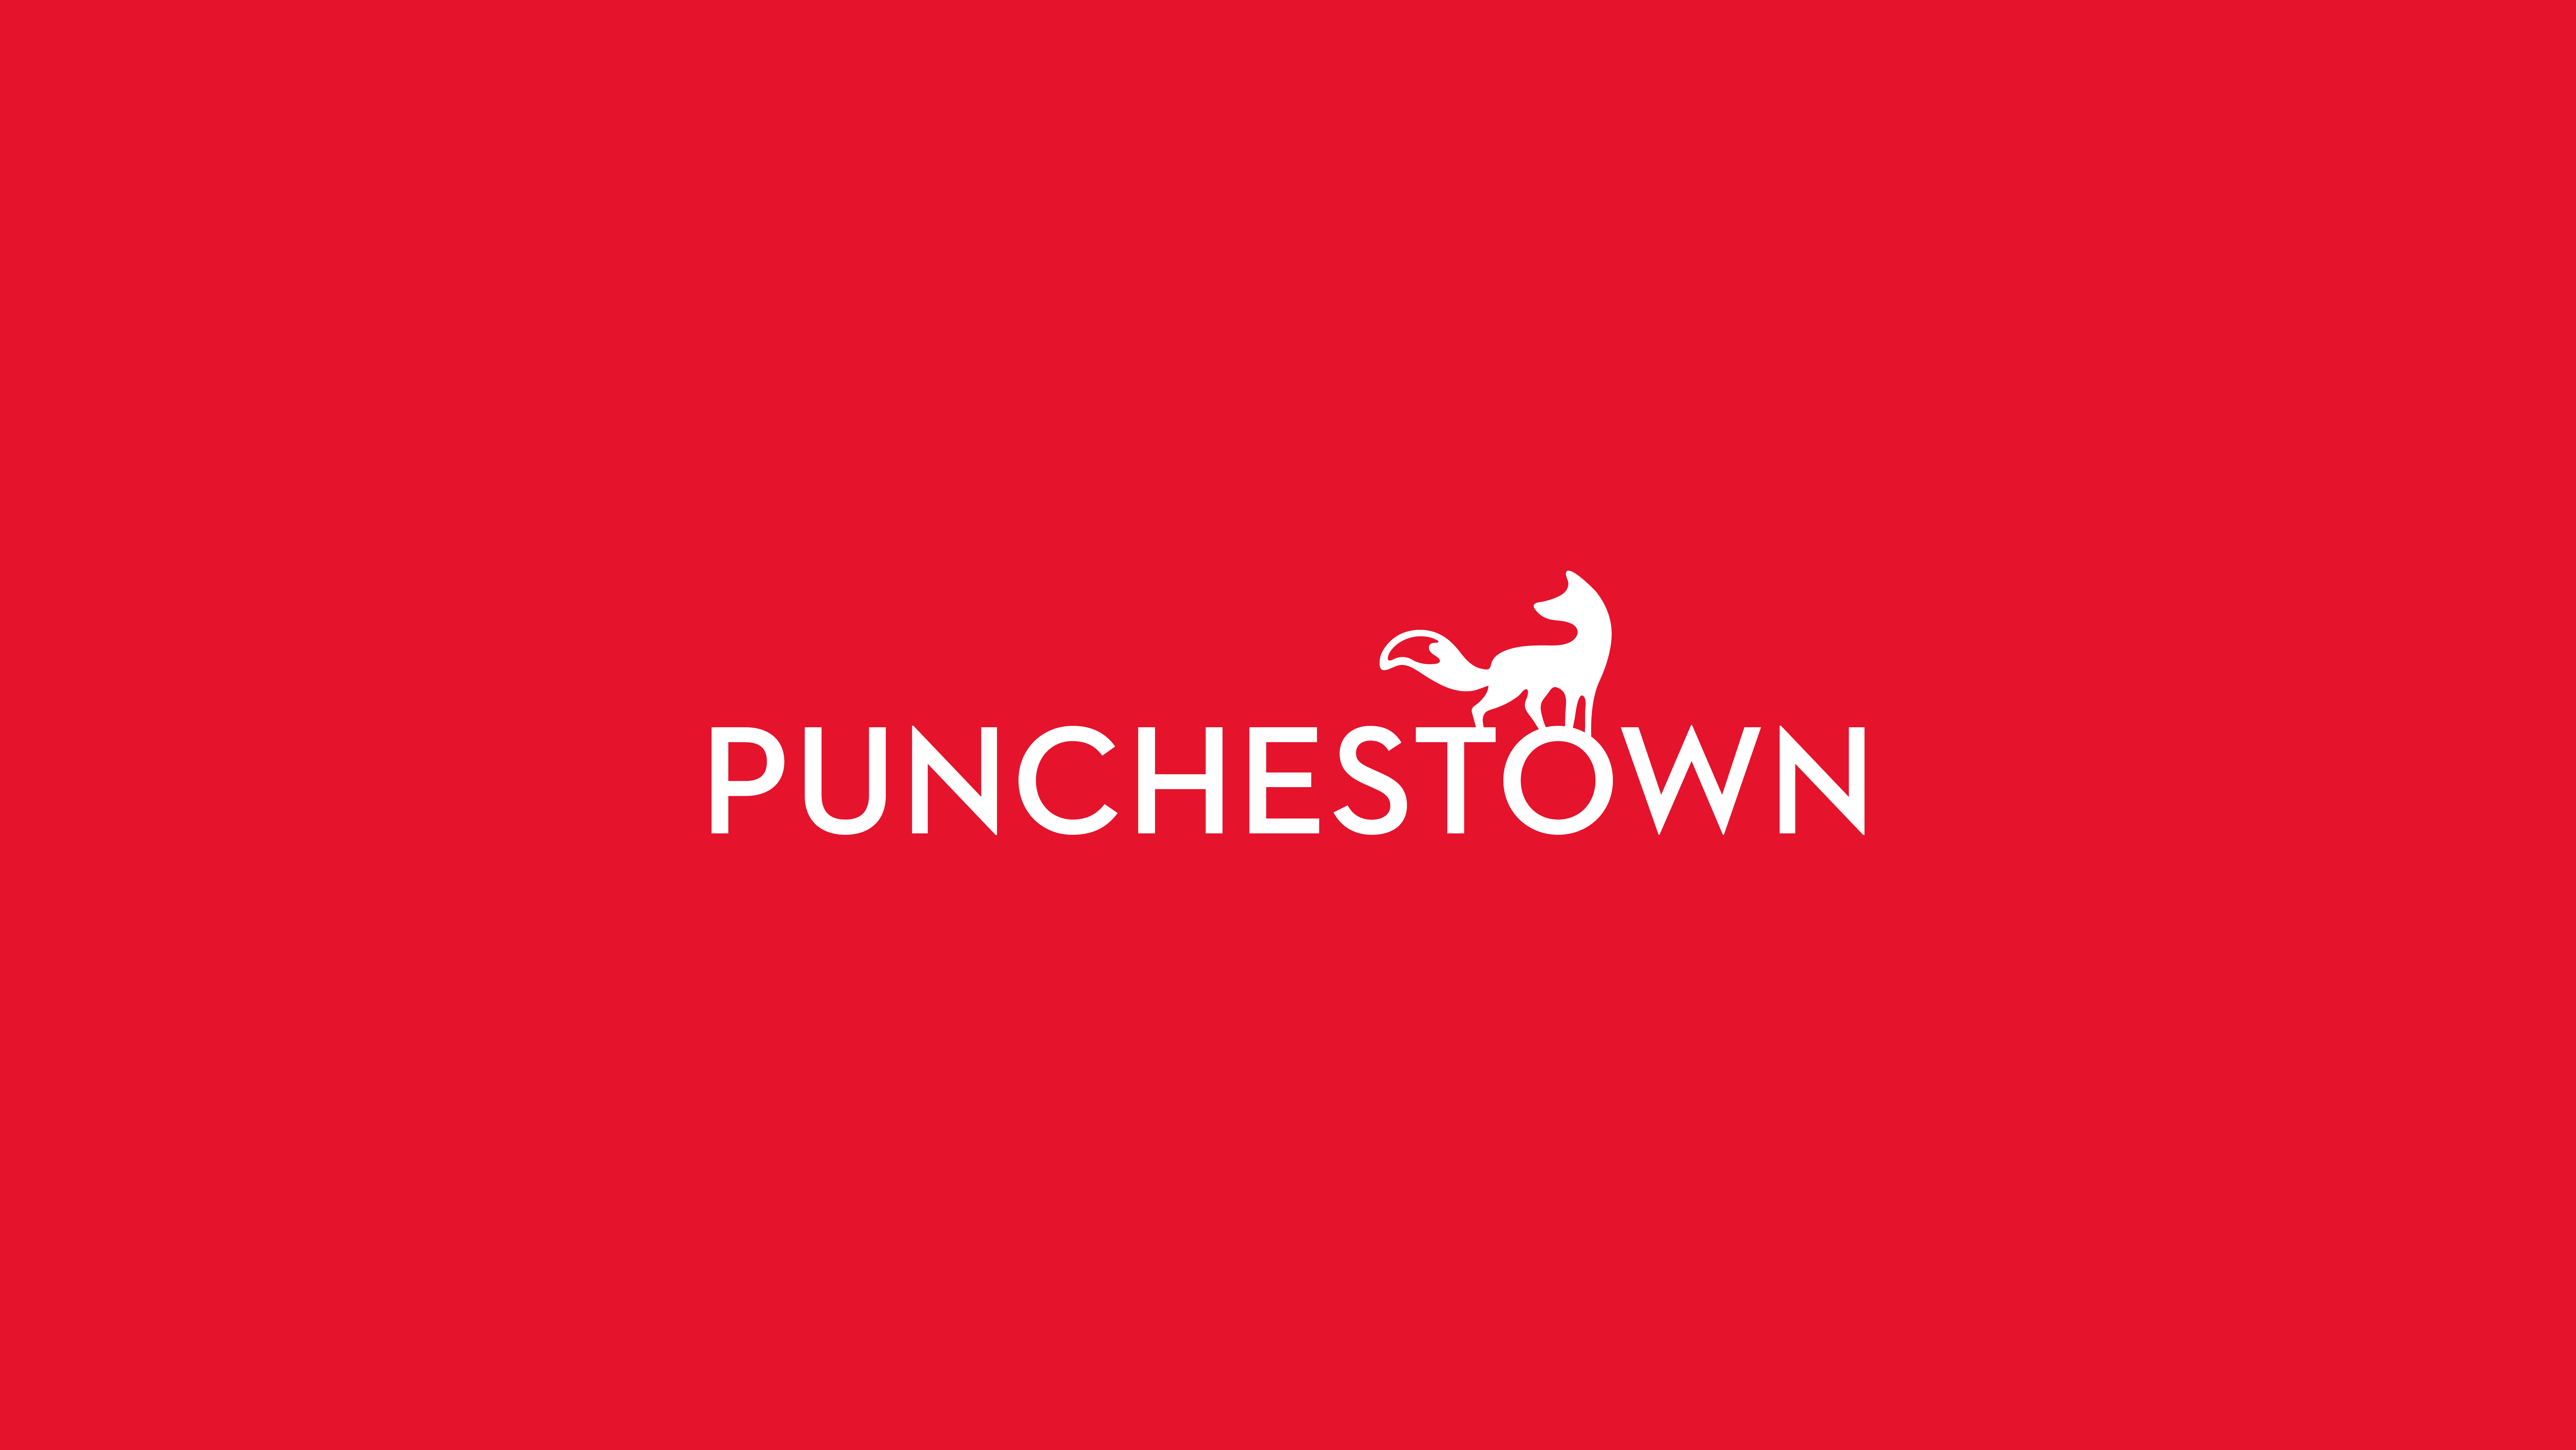 Cover image: Punchestown Branding